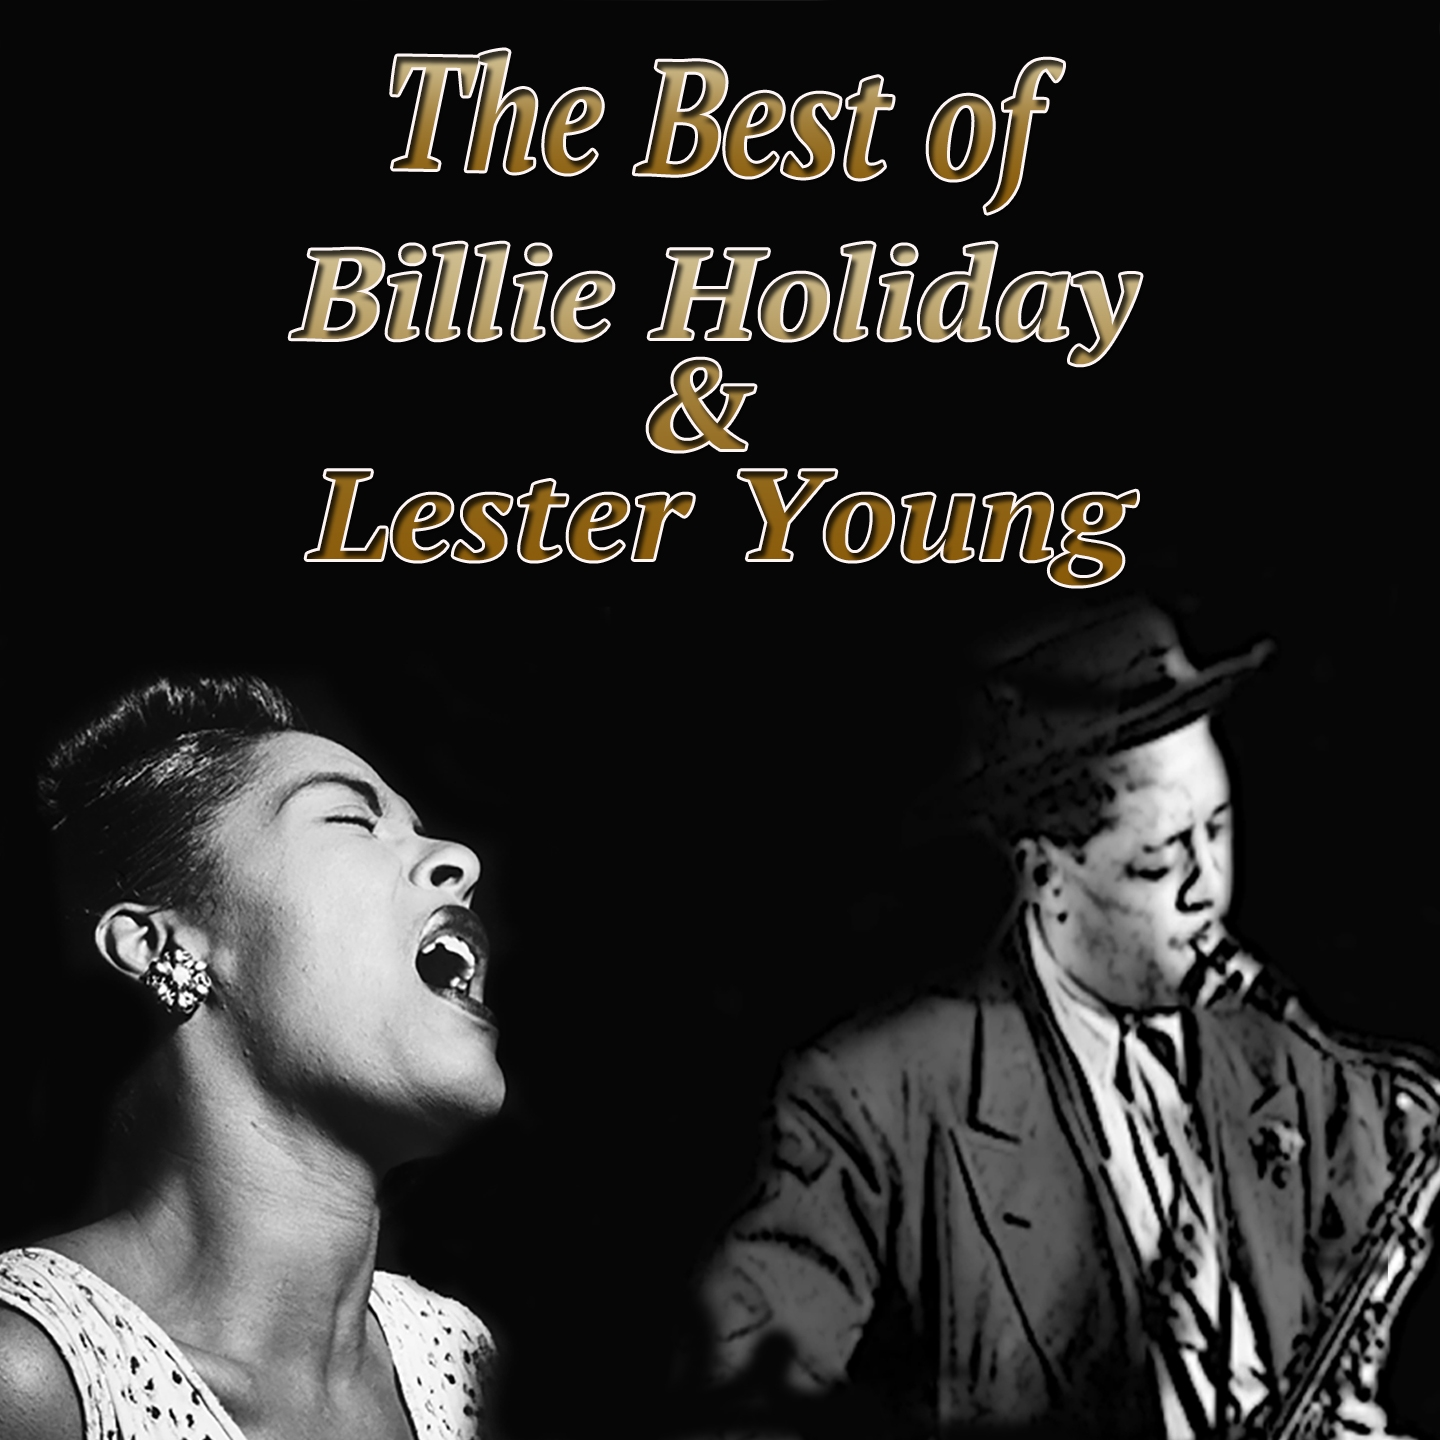 The Best of Billie Holiday & Lester Young